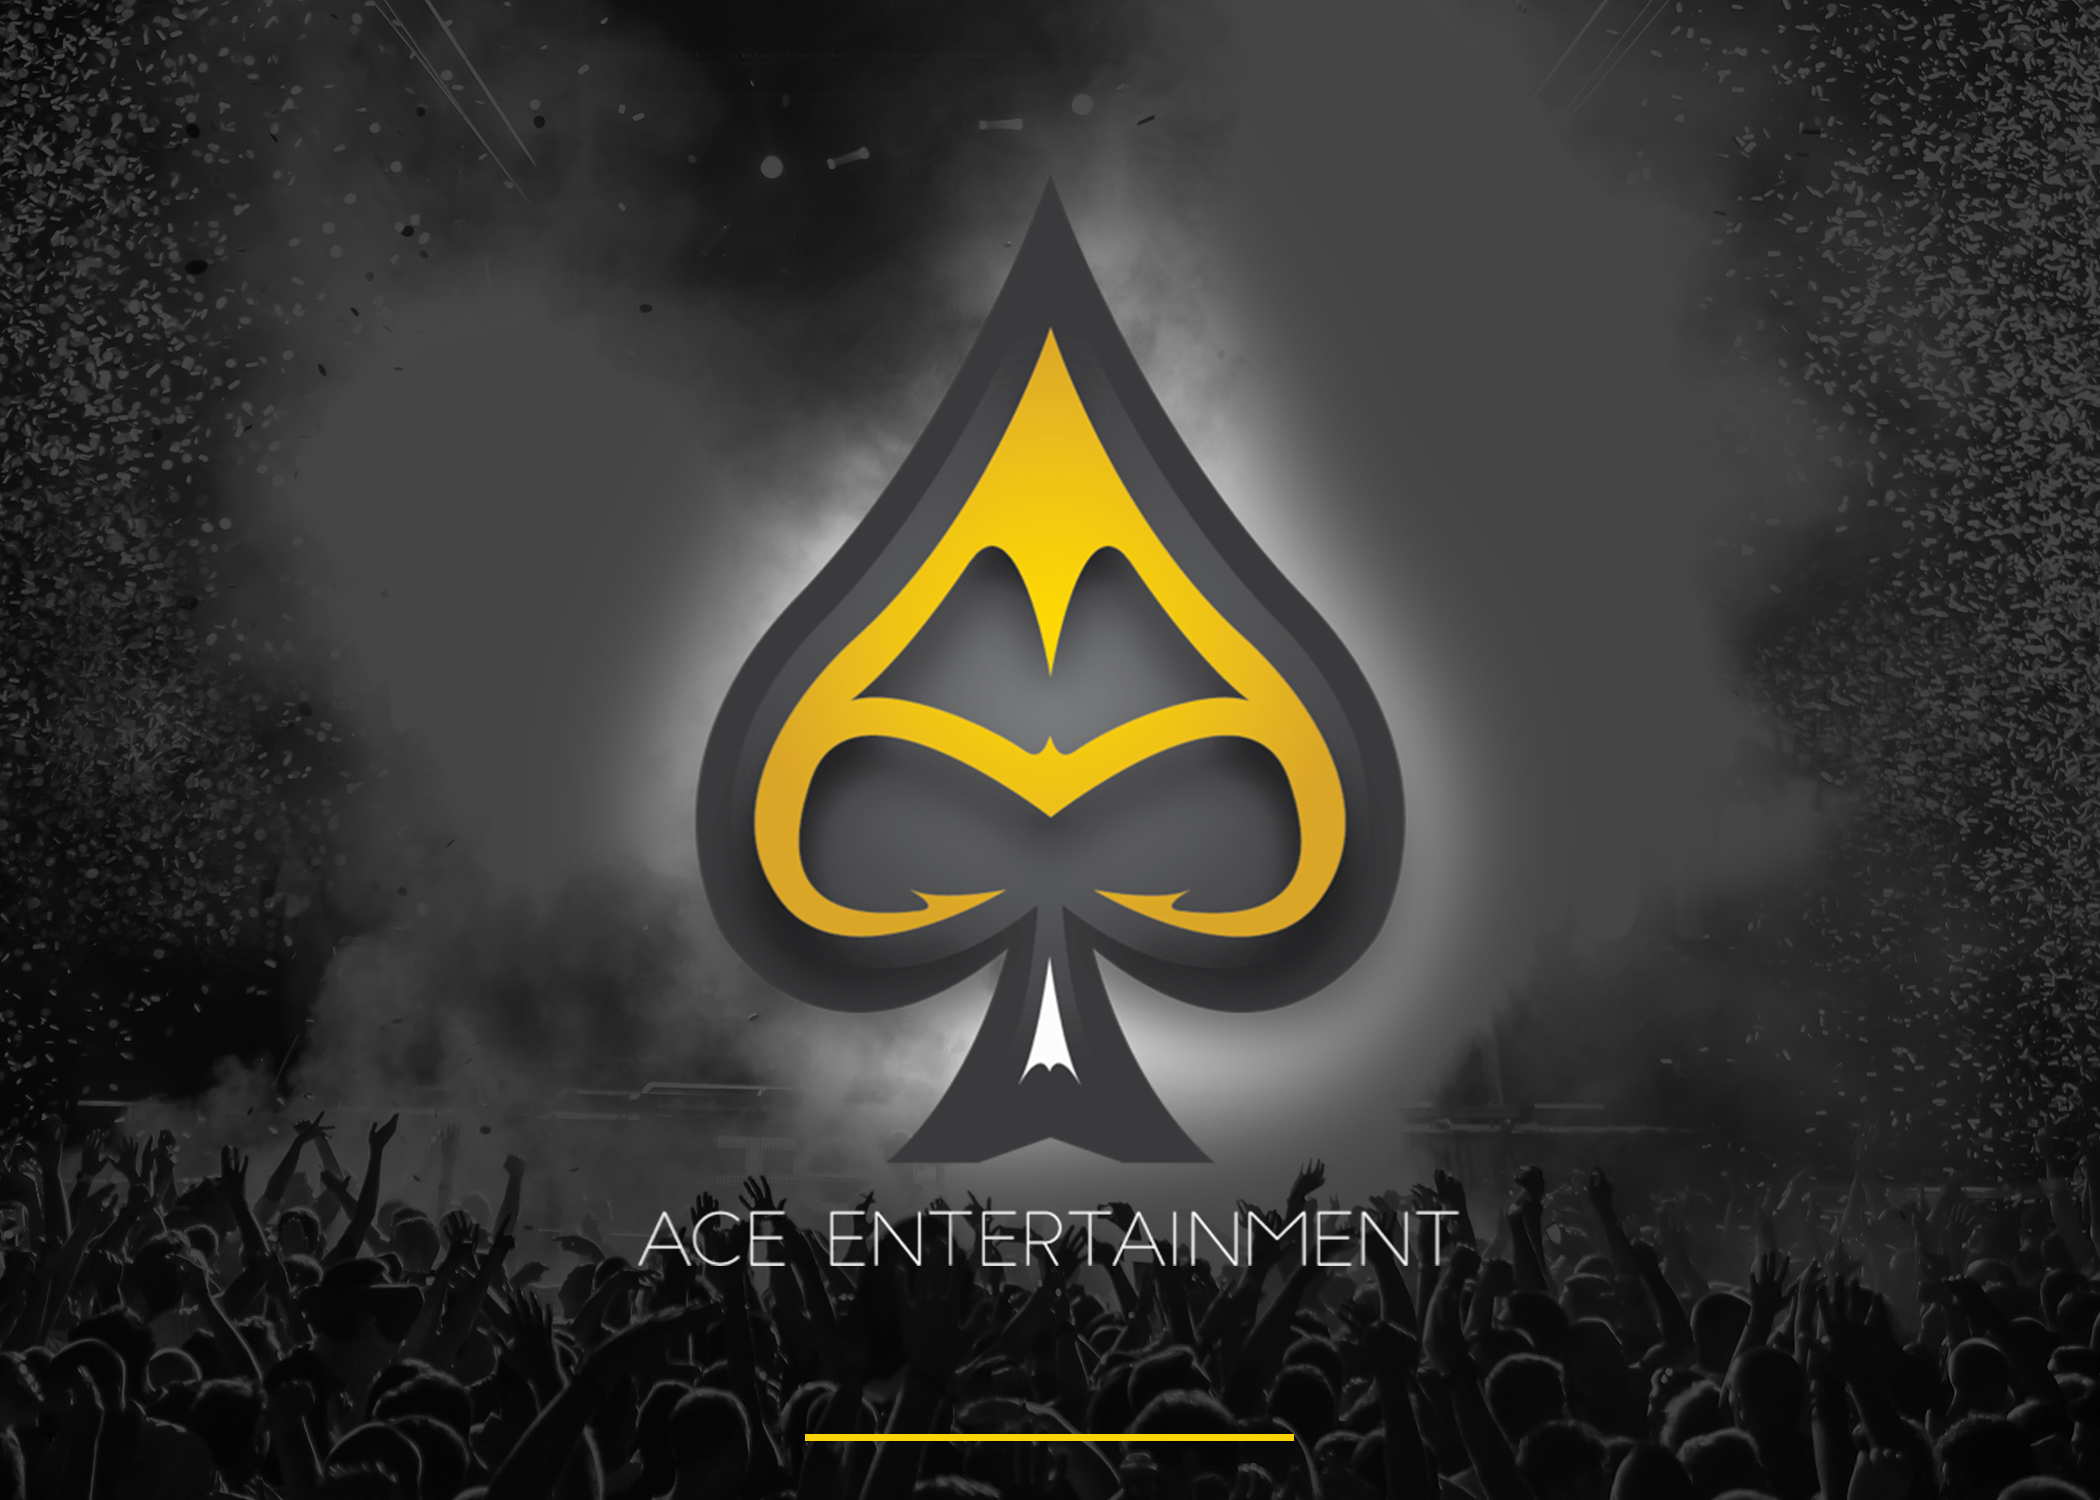 Ace-Entertainment-About.jpg